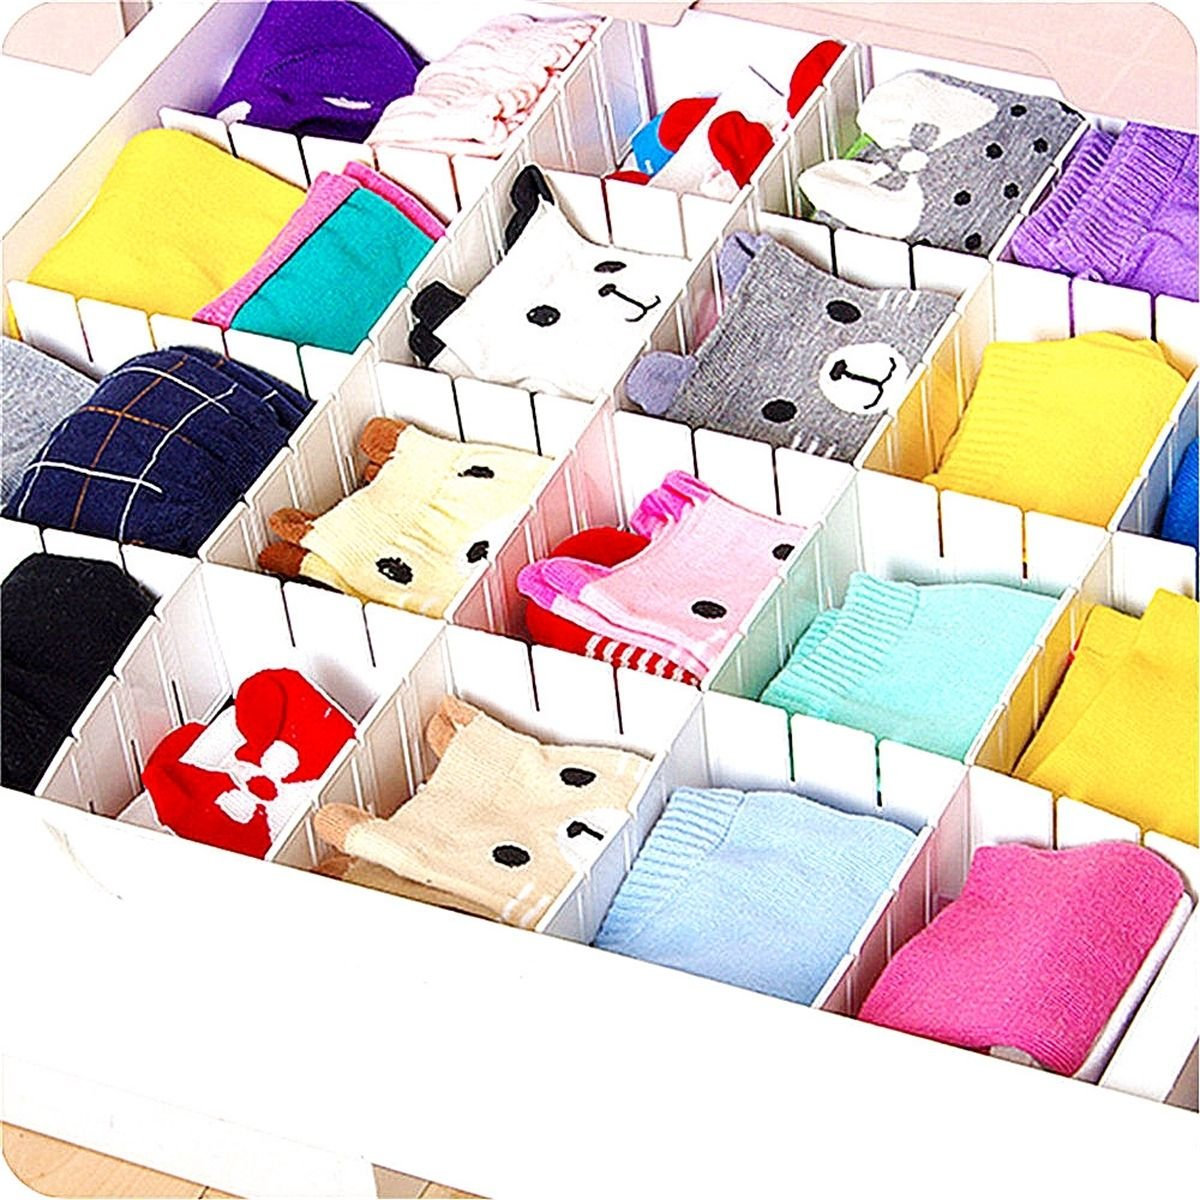 6PCS DIY Grid Drawer Divider Storage Organizer Drawer Partitions Free Combination Malayas